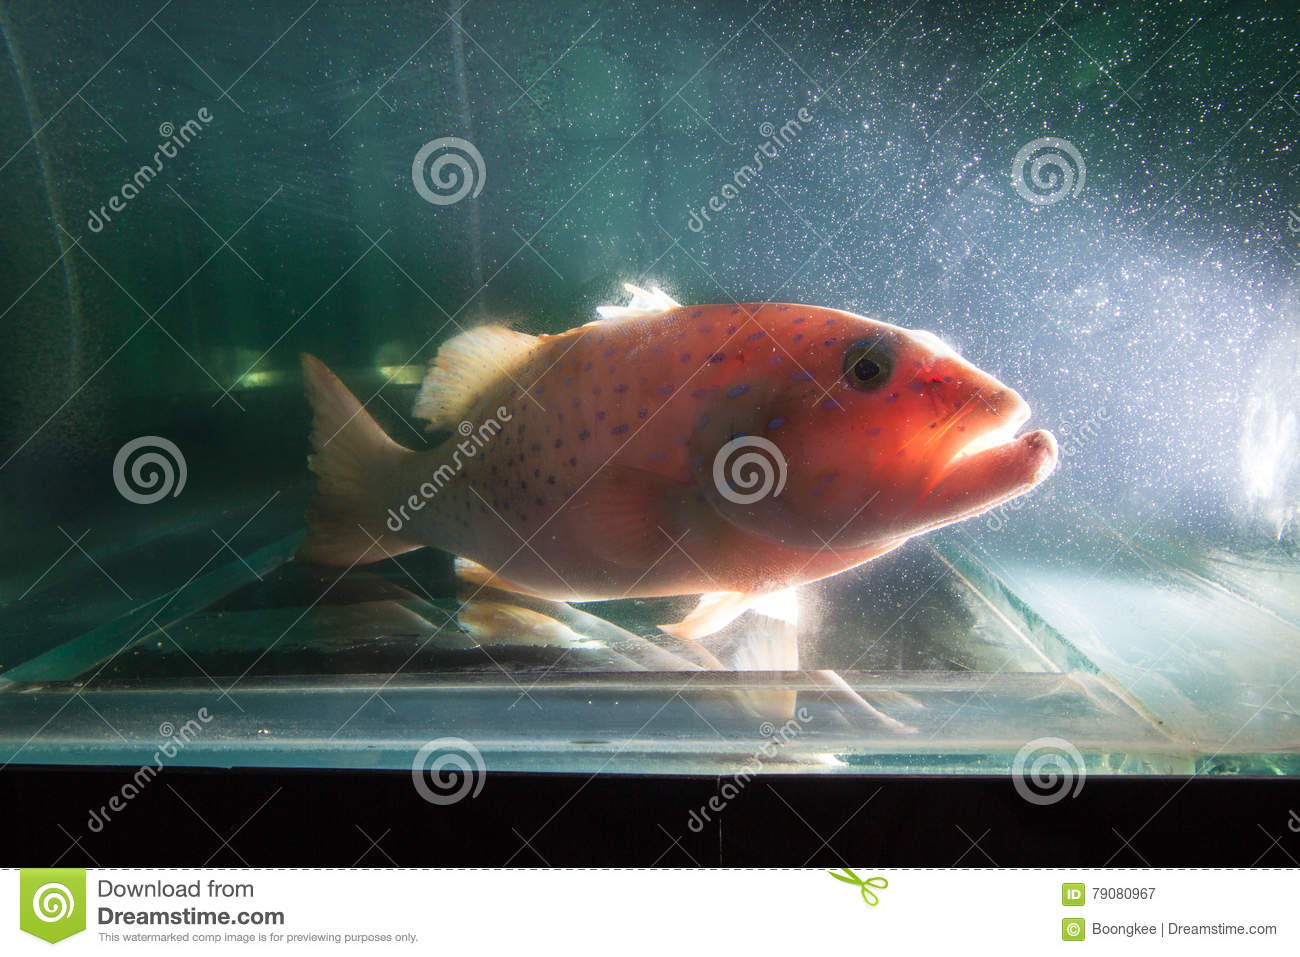 Grouper Fish Grouper Fish Under Water Stock Image - Image of fish